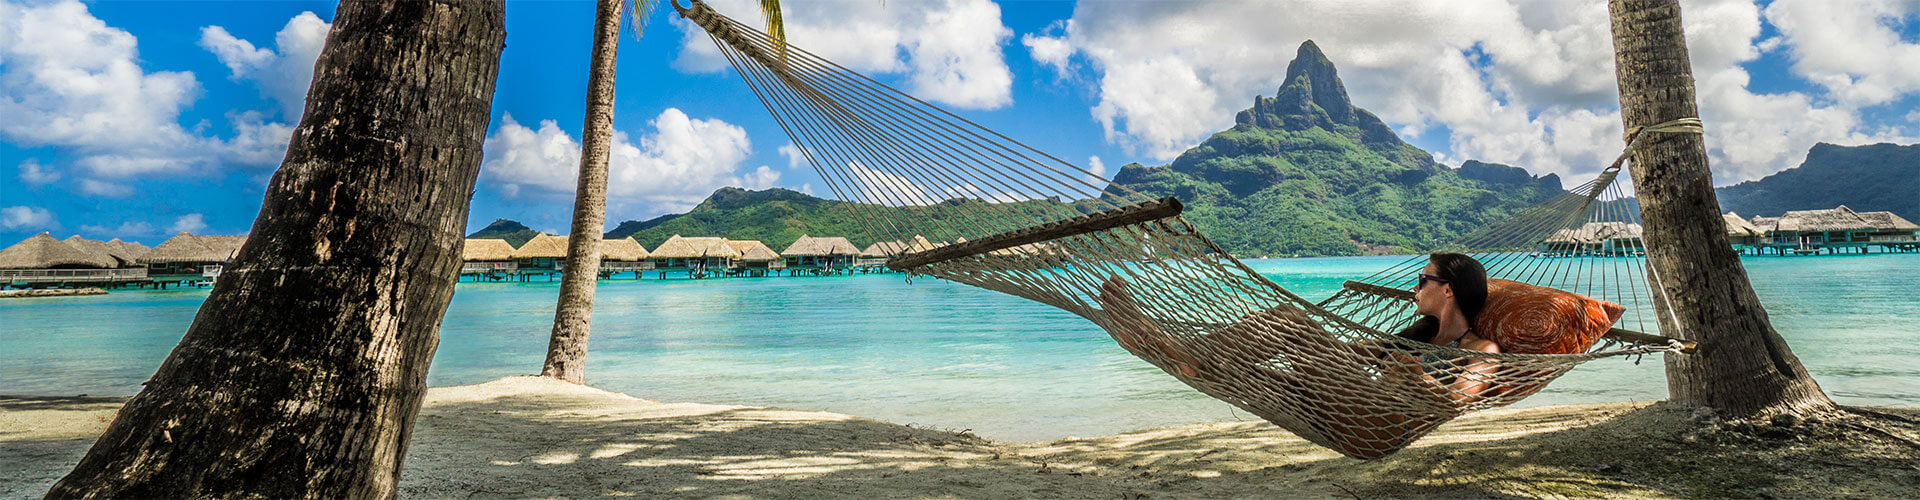 Woman relaxing in hammock in the Tahitian Islands